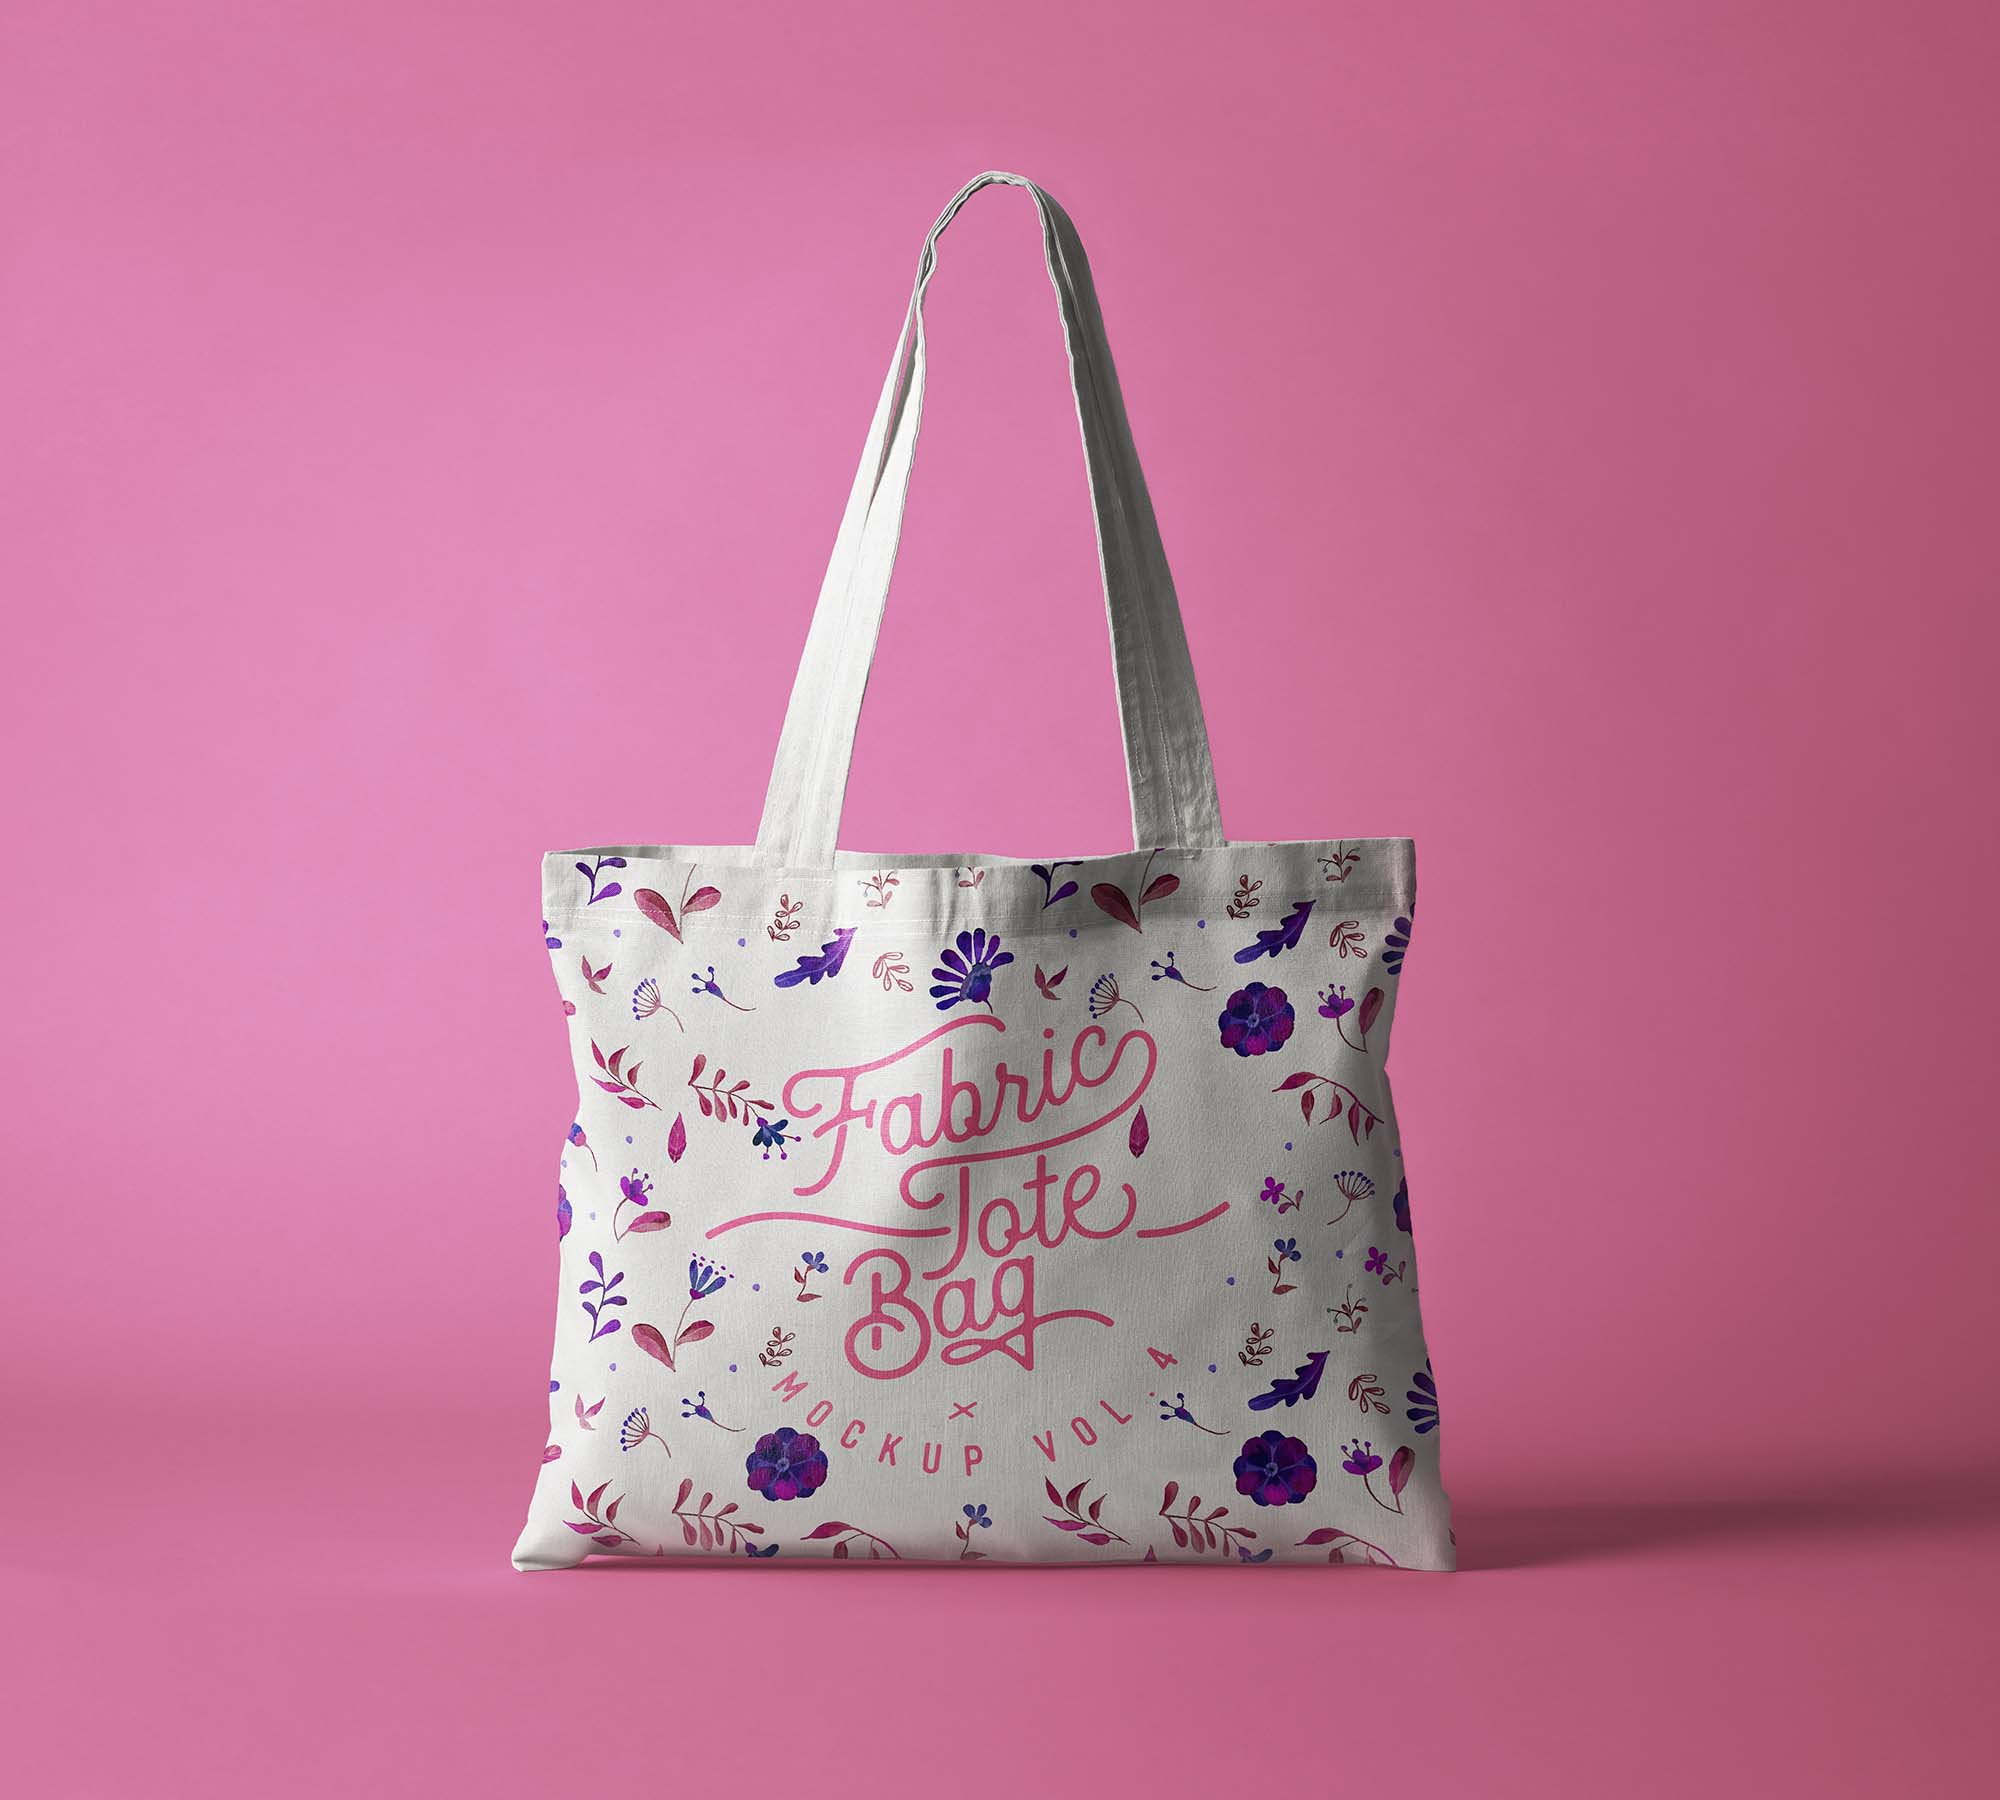 Fabric Tote Bag Mockup